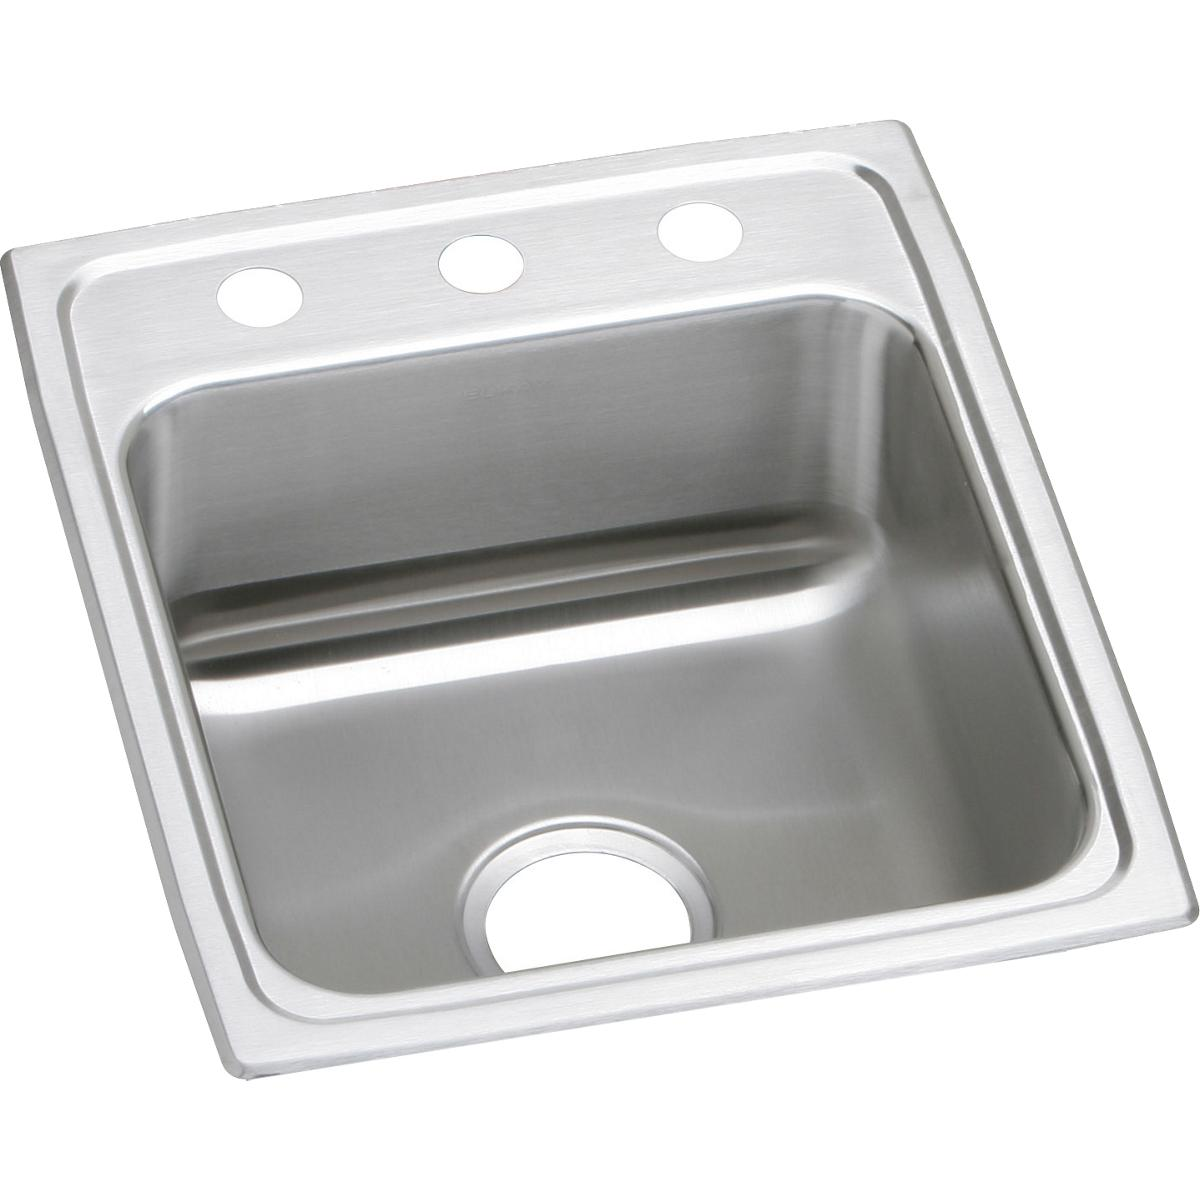 "Elkay Lustertone Classic Stainless Steel 17"" x 20"" x 6-1/2"", Single Bowl Drop-in ADA Sink"